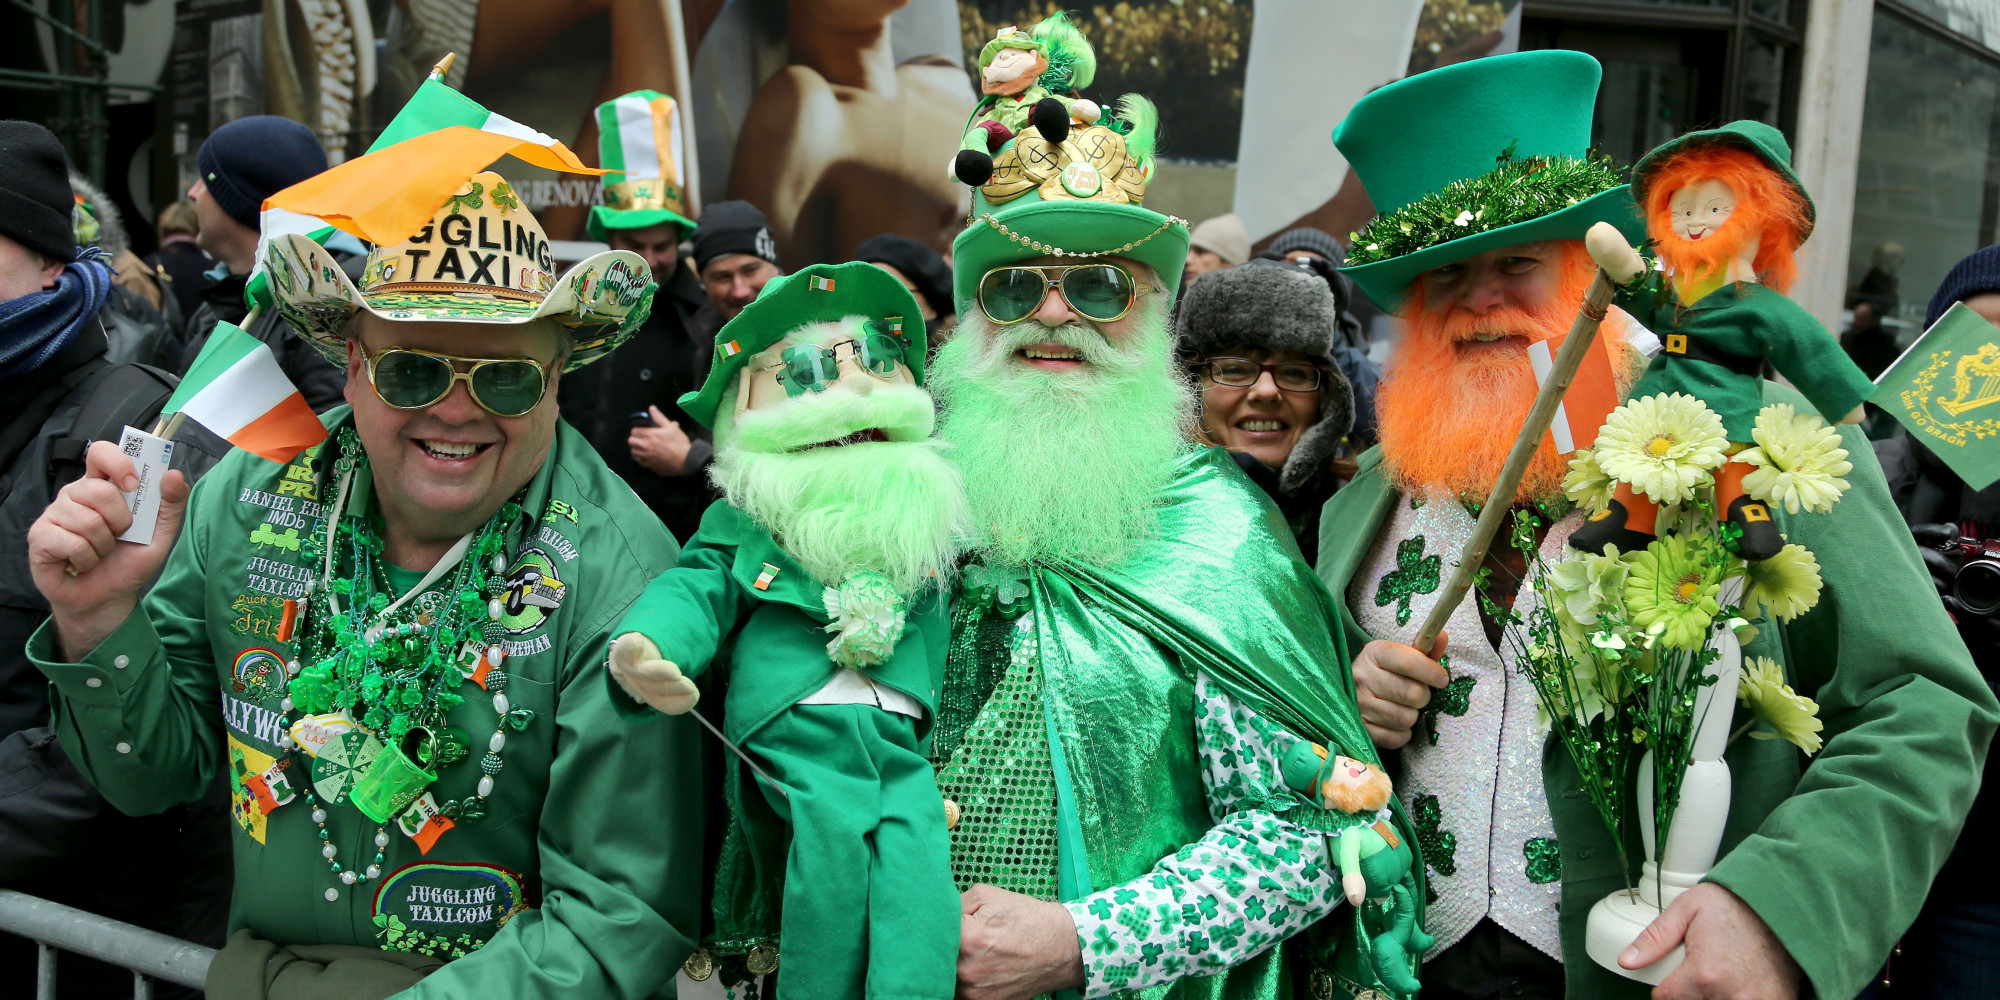 With the 2nd largest parade in the United States and some of the best festivals Savannahs St Patricks Day Celebrations are unlike any others